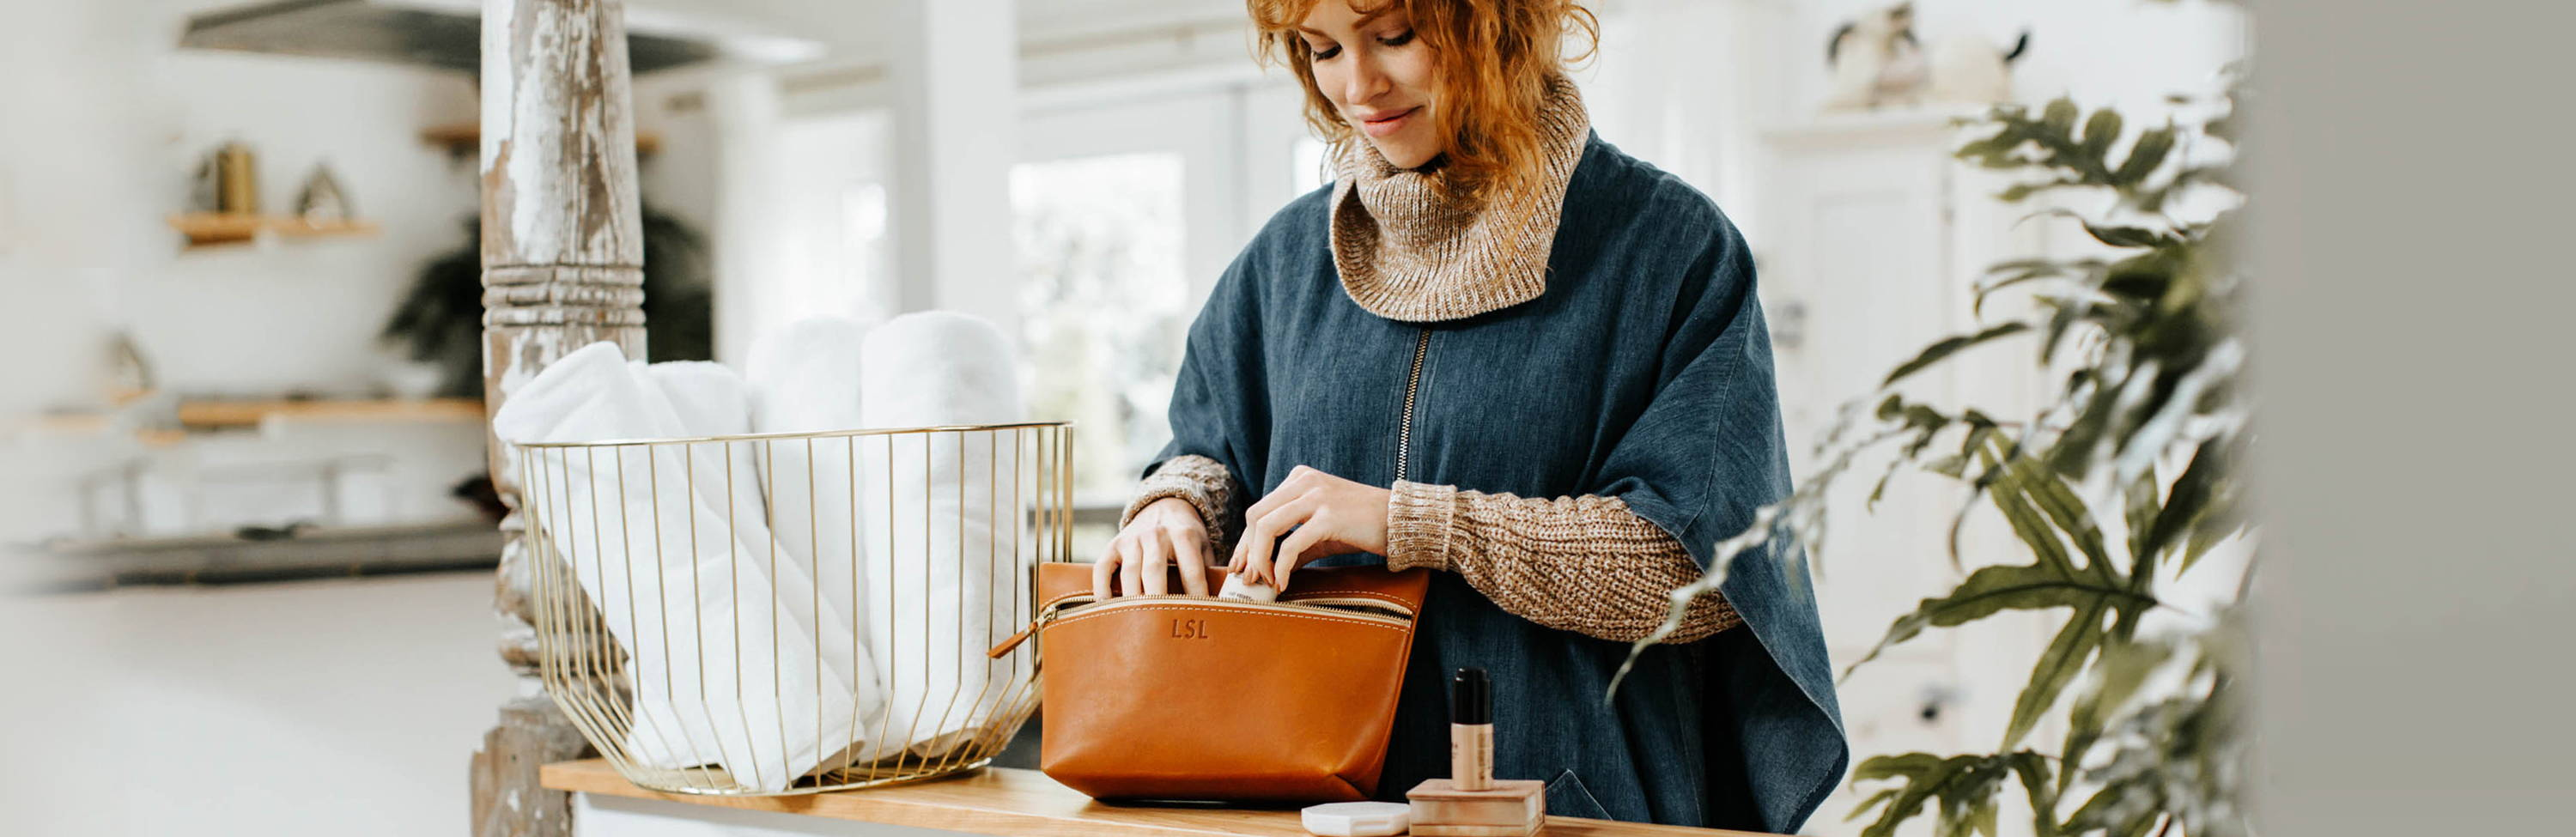 a smiling woman putting makeup and cosmetics into her handmade leather makeup bag by portland leather goods